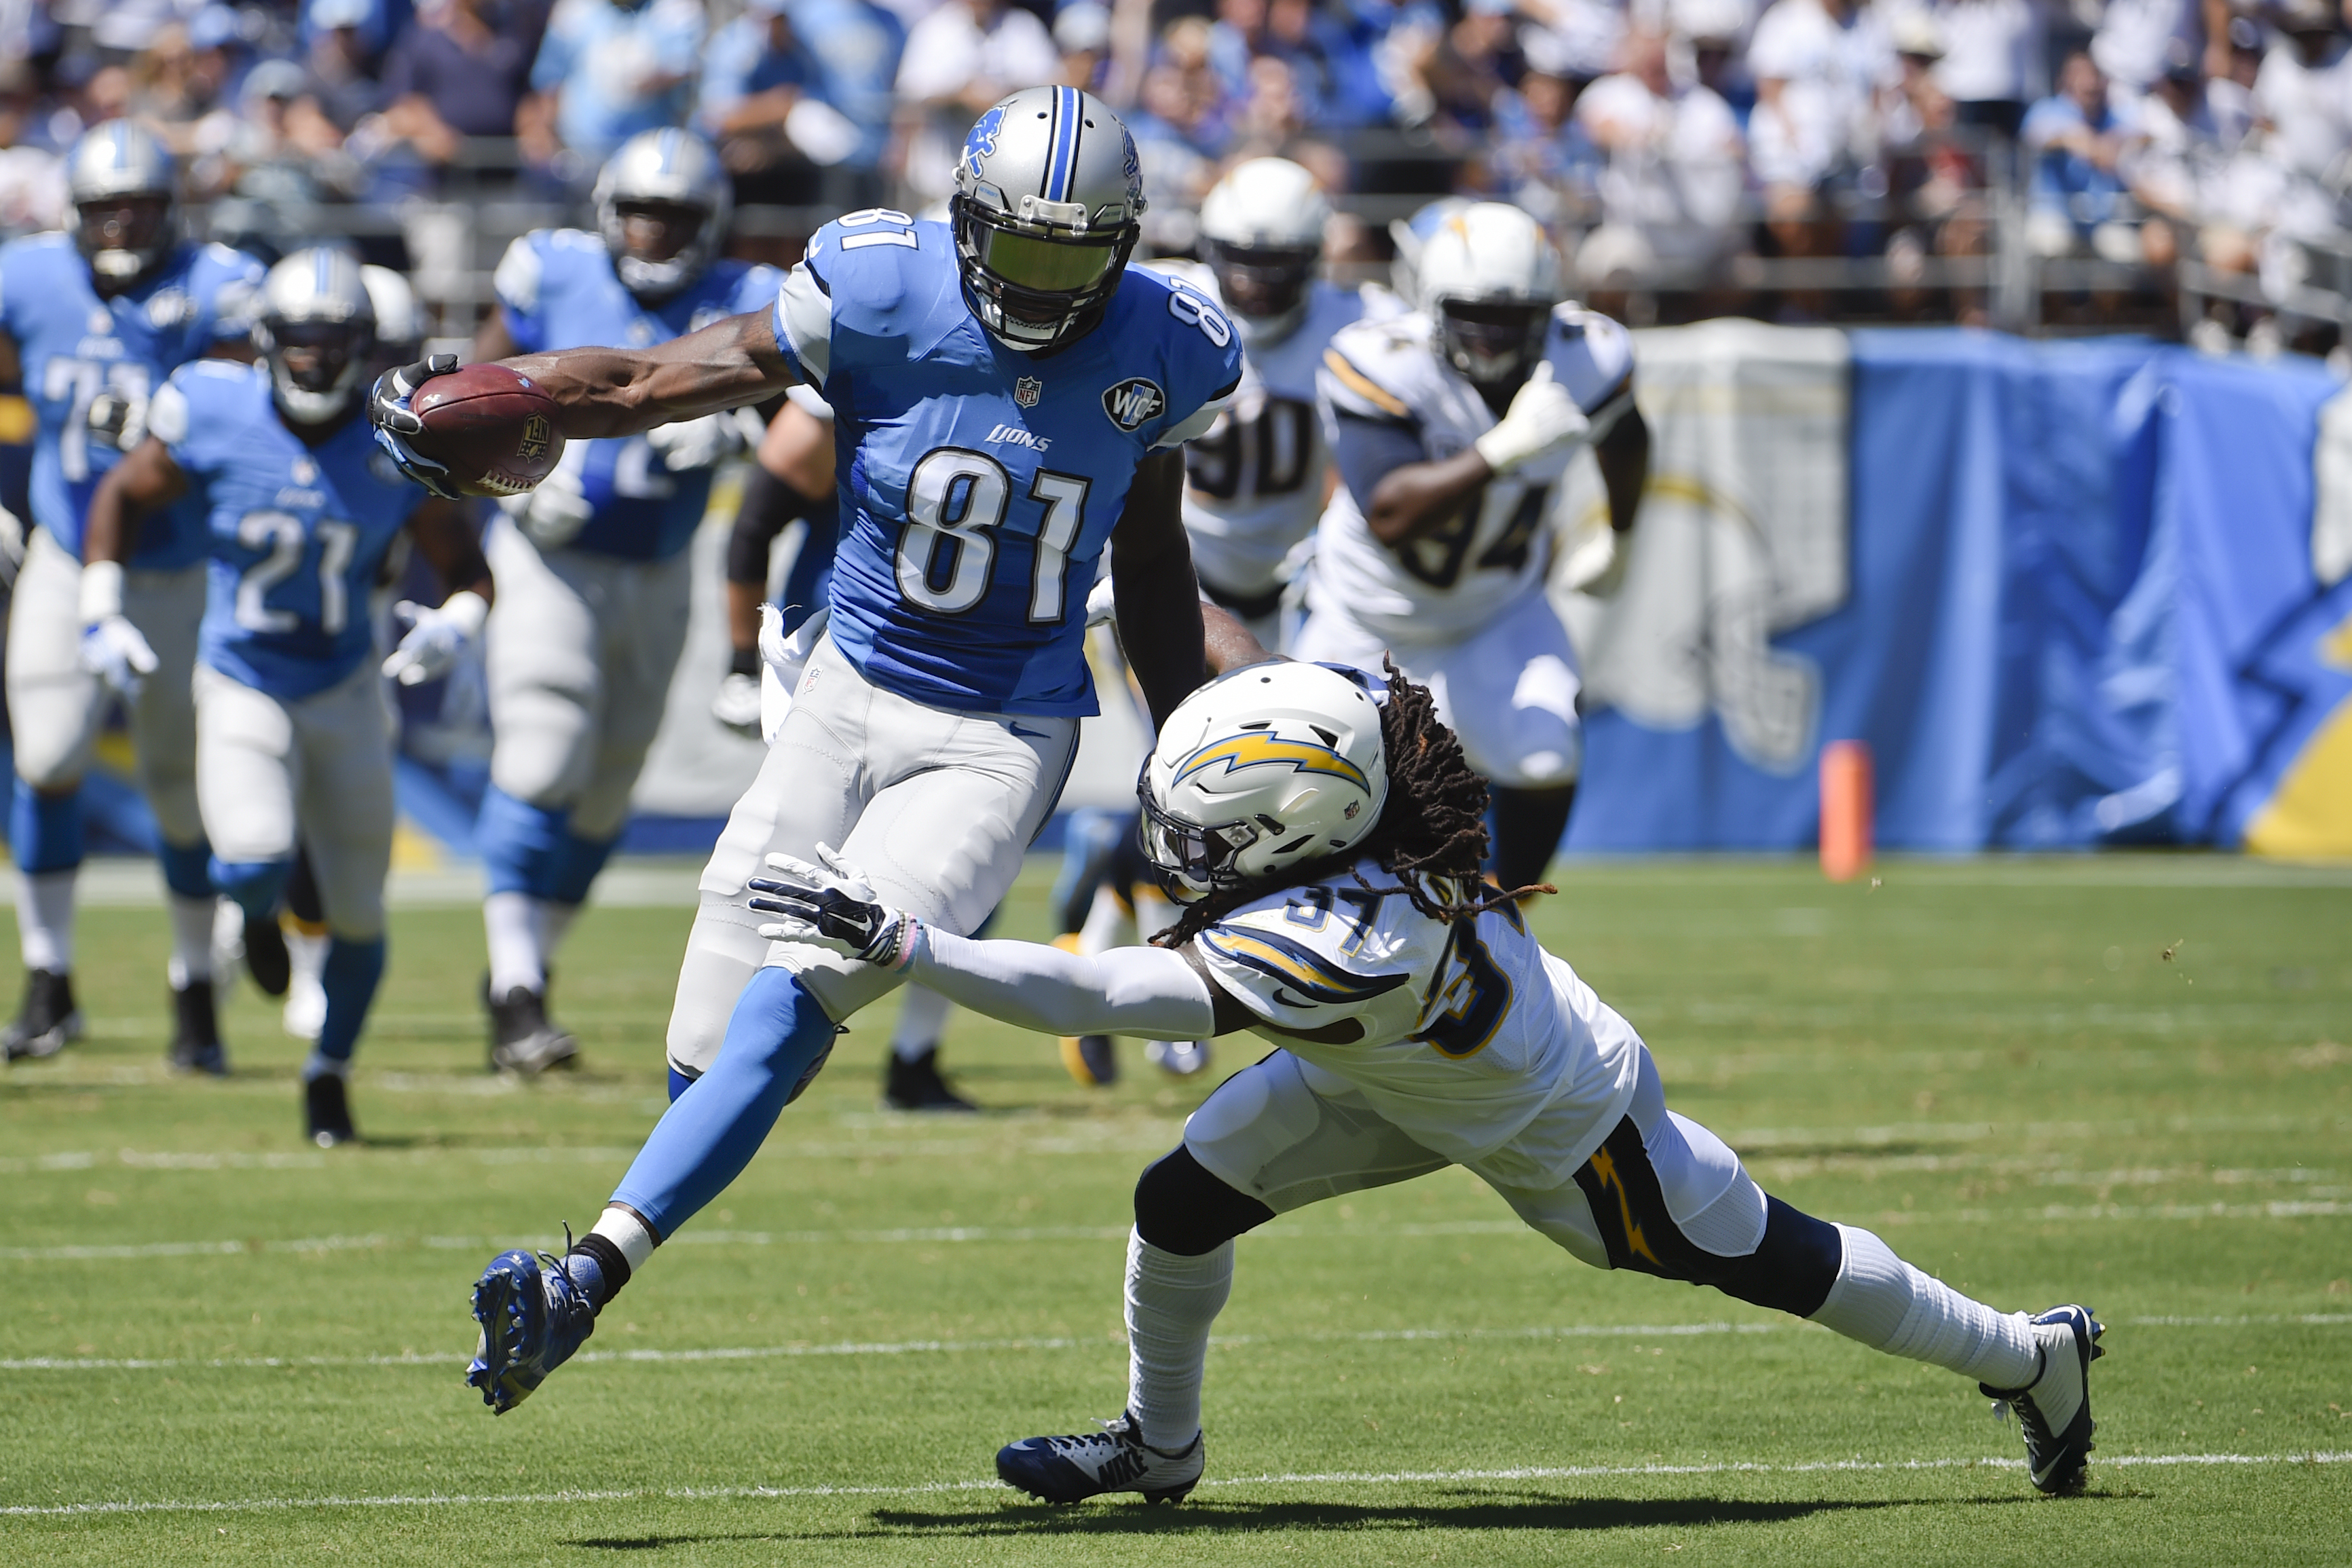 Detroit Lions wide receiver Calvin Johnson (81) runs upfield as San Diego Chargers defensive back Jahleel Addae defends during the first half of an NFL football game Sunday, Sept. 13, 2015, in San Diego. (AP Photo/Denis Poroy)